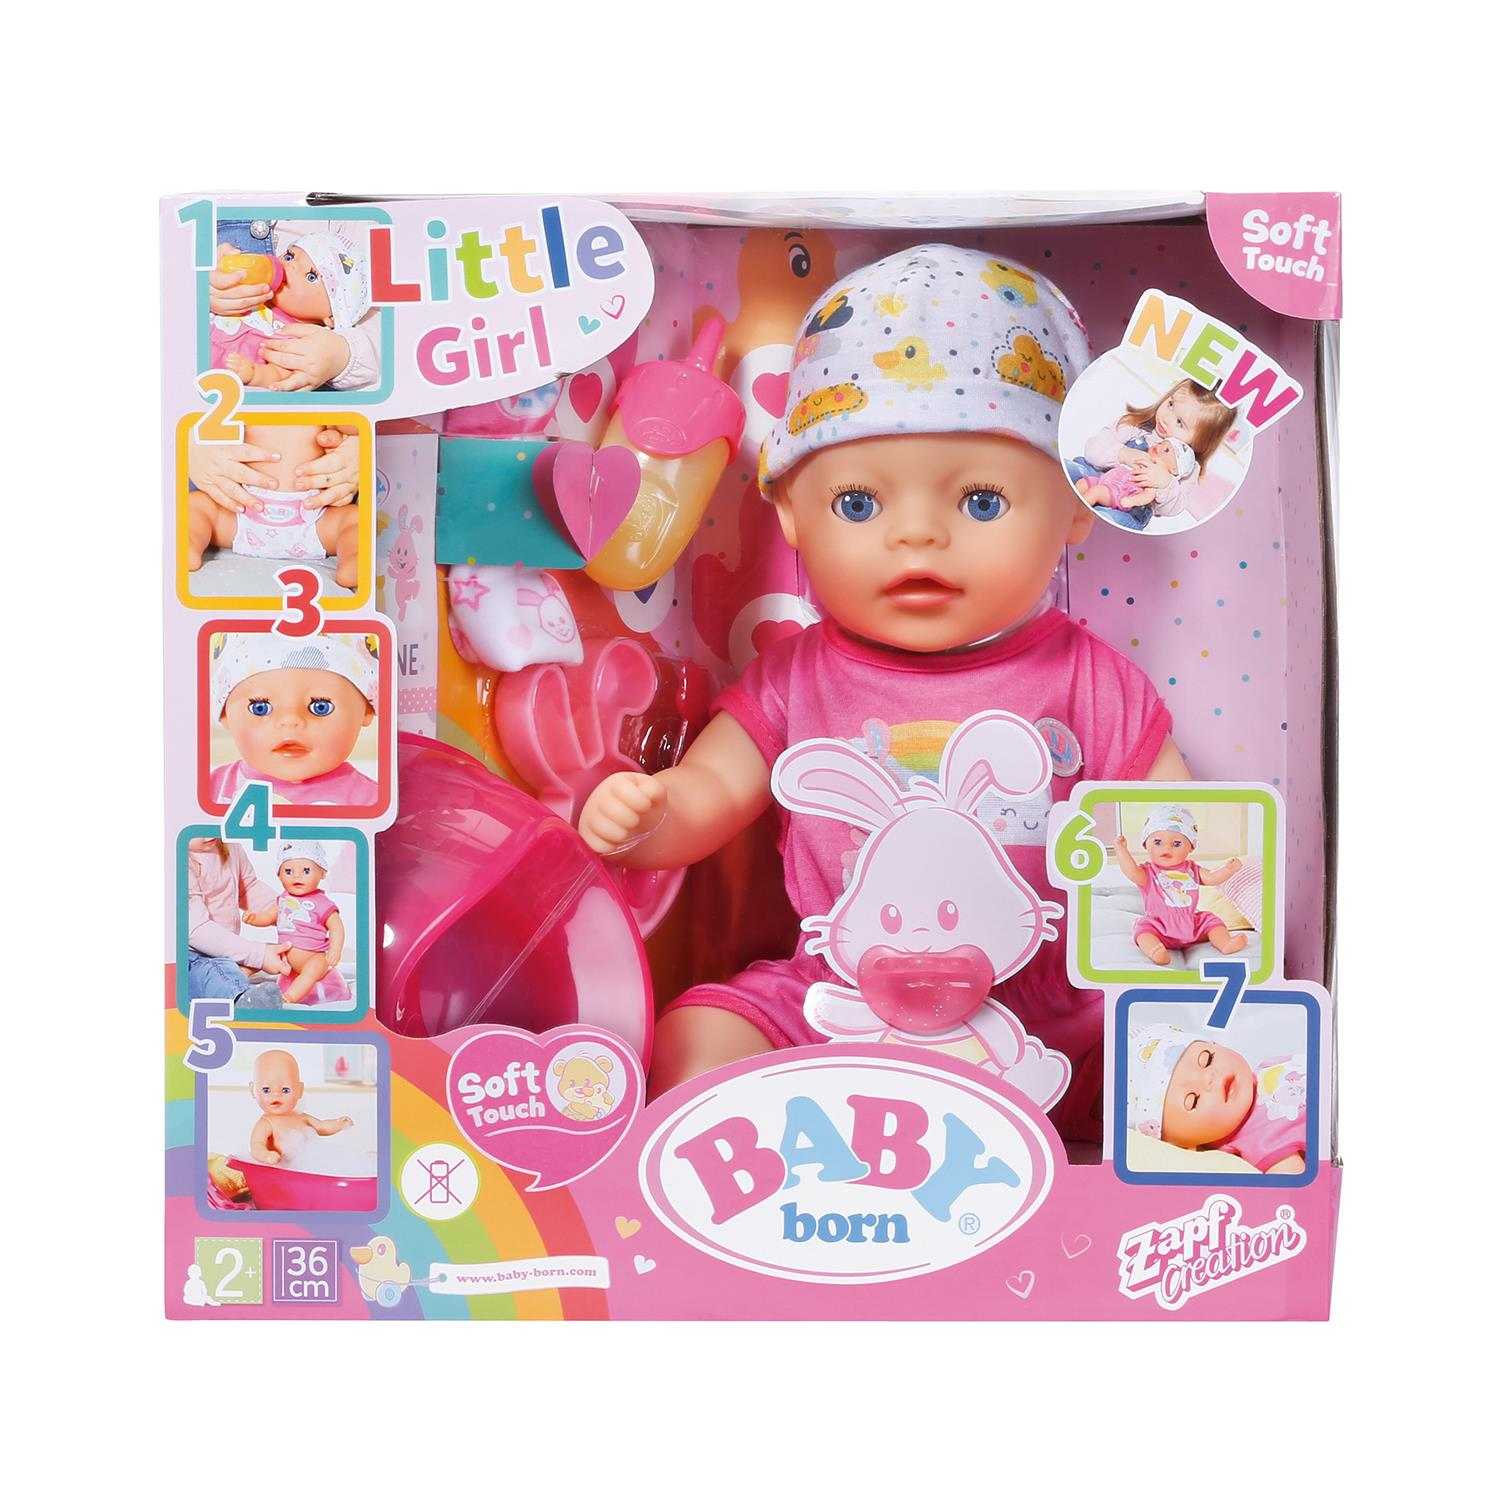 BABY born ® Soft Touch 36 cm